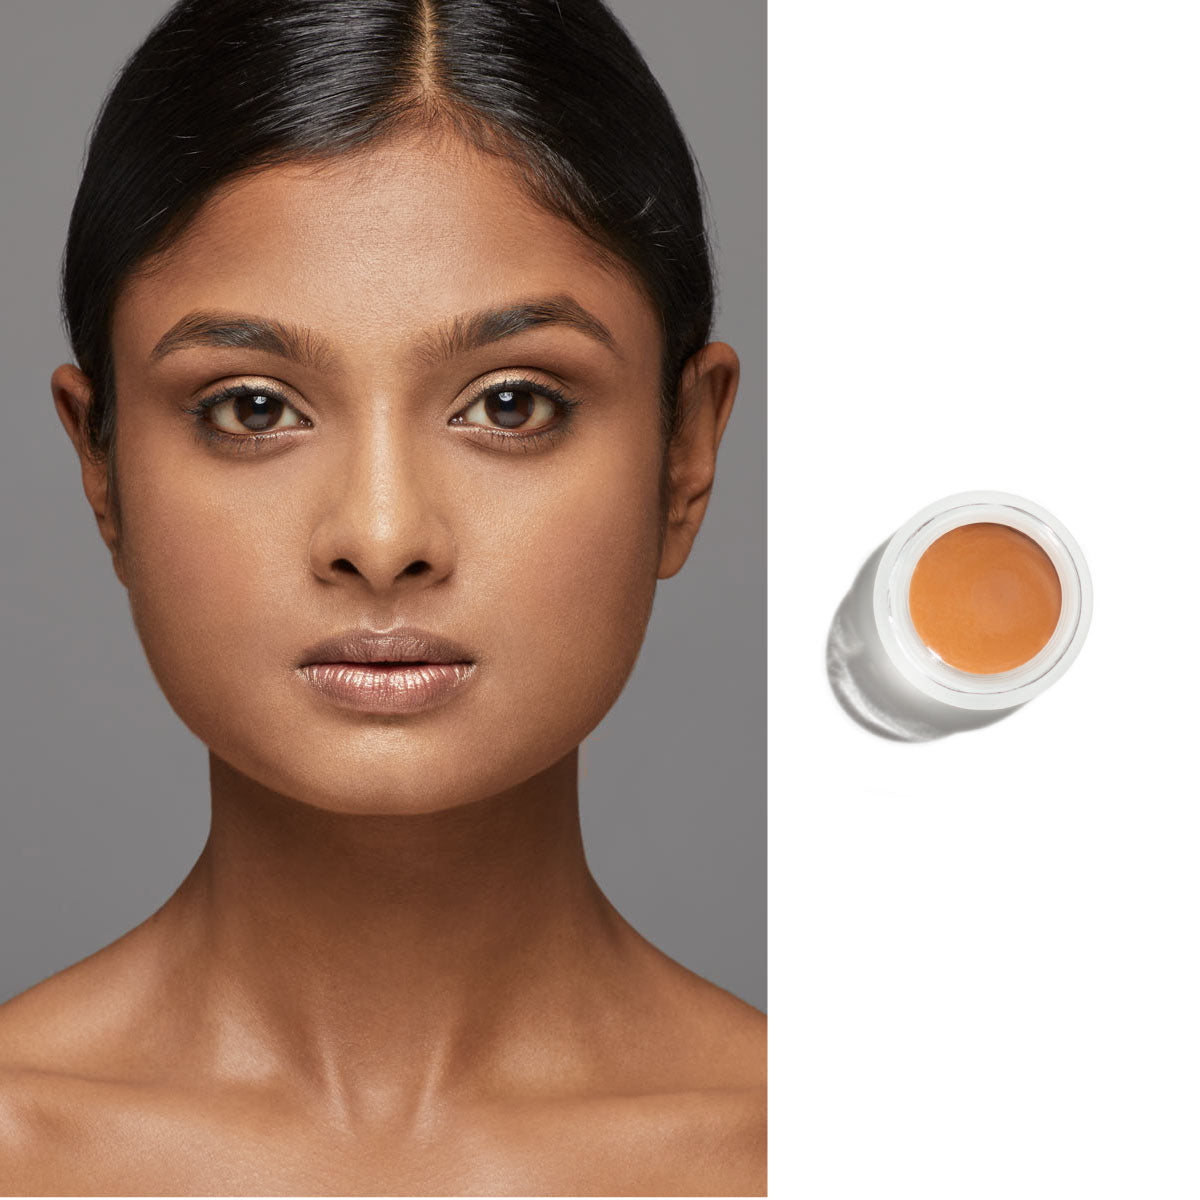 Concealer/Foundation 5.0